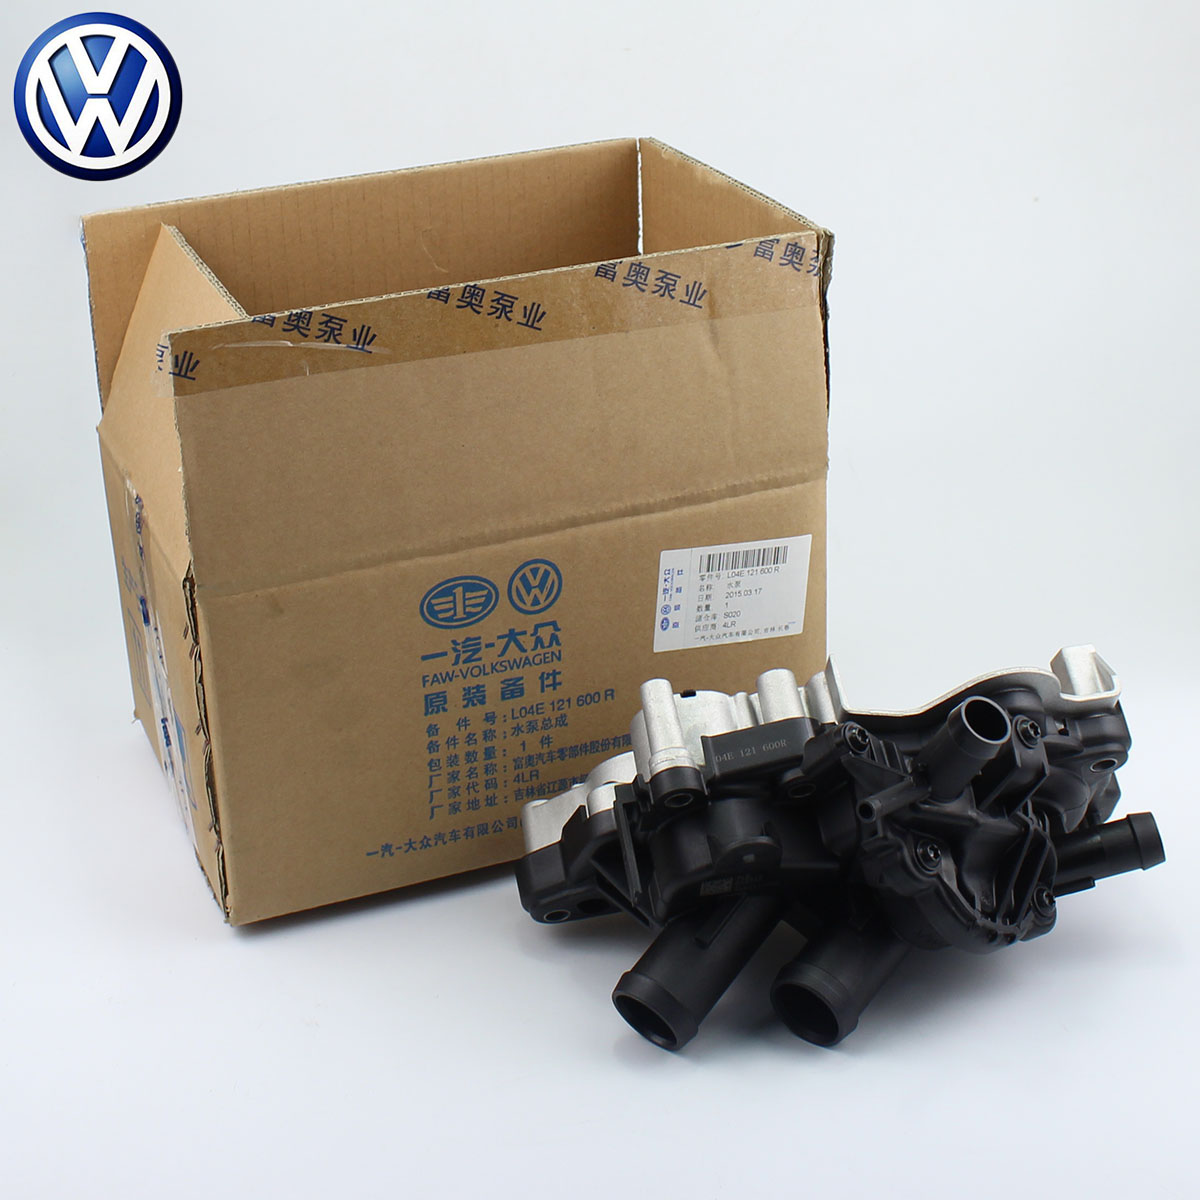 Engine Water Pump Kit OEM 04E 121 600 BF For VW Jetta Mk2 Golf MK7/Sportsvan Passat B8 oem genuine car parts oil pump assembly 06j 115 105 ac fit vw golf tiguan gti jetta passat engine 1 8tsi 2 0tsi new